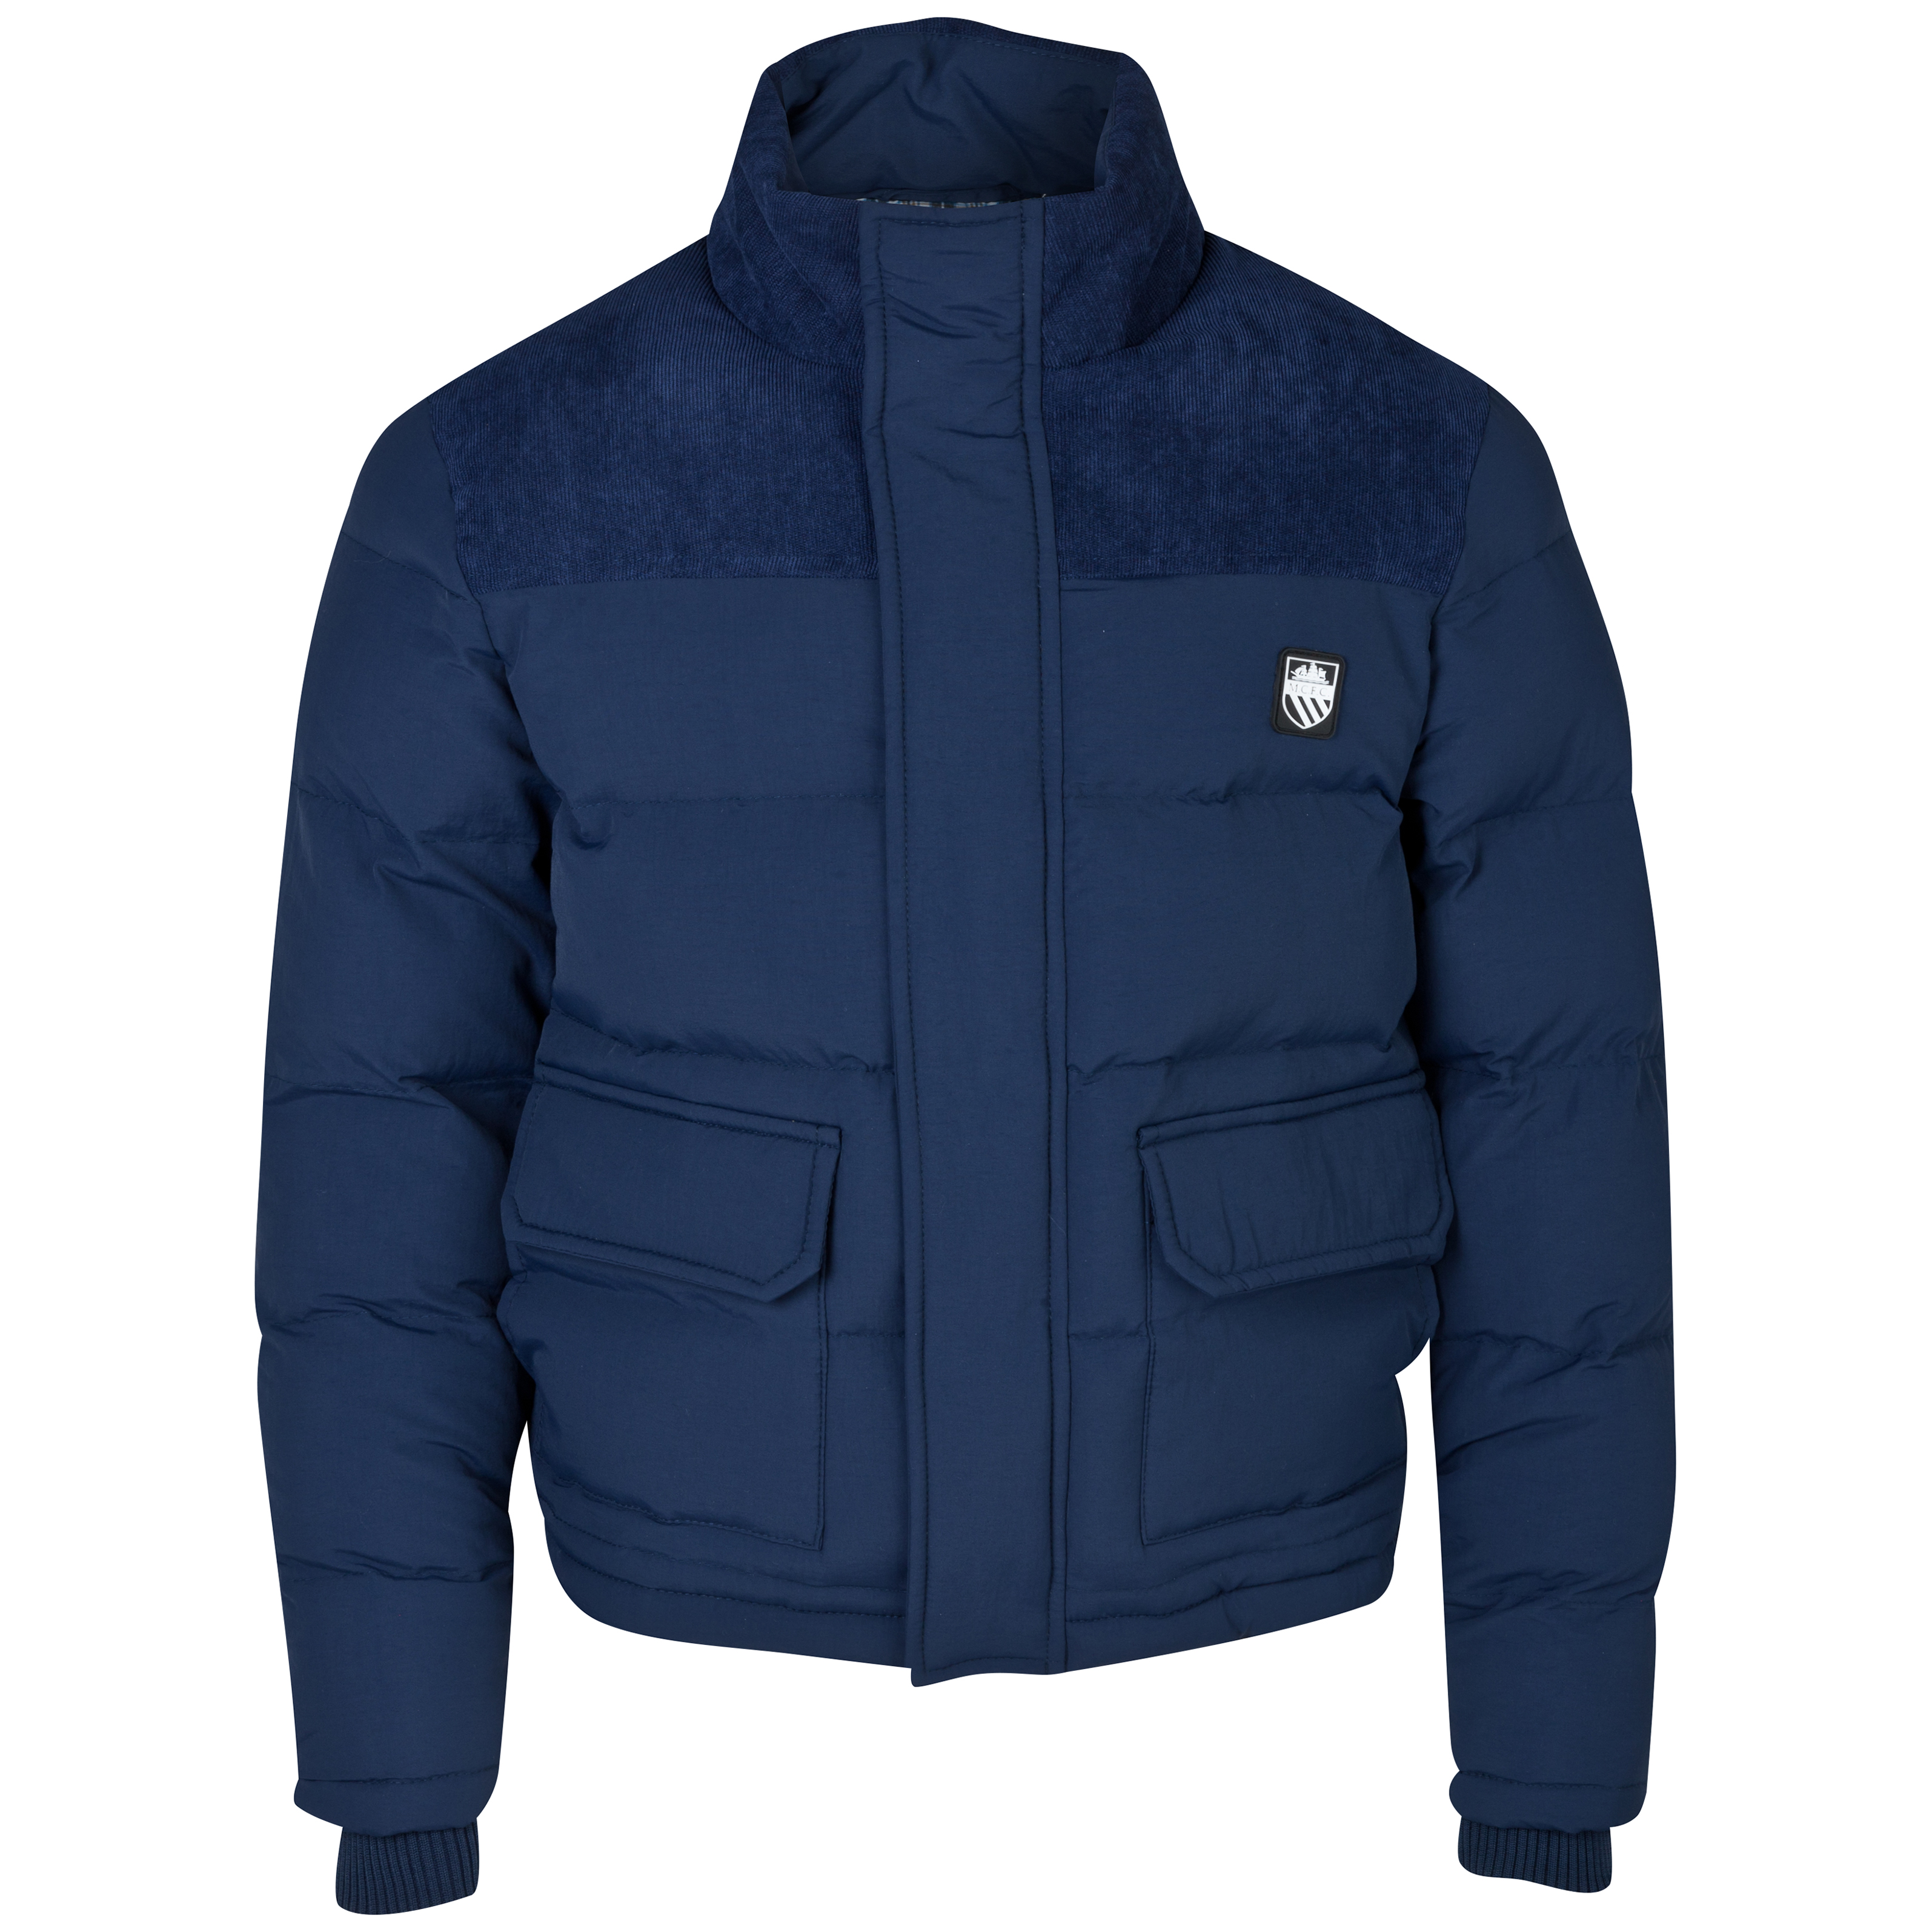 Manchester City Vancover Jacket - Boys Navy